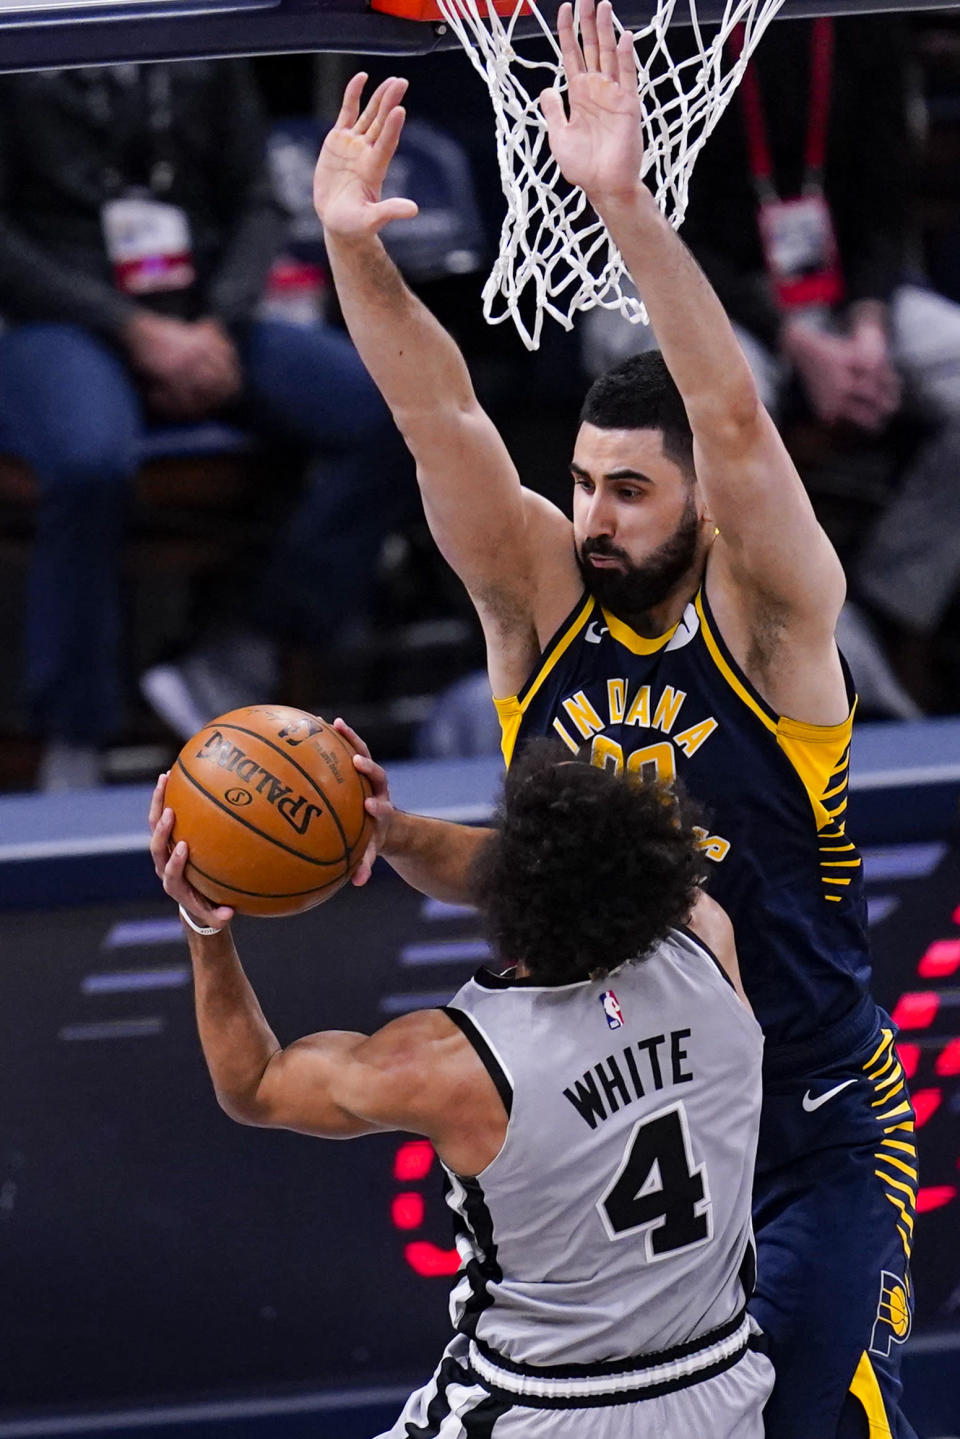 Indiana Pacers center Goga Bitadze (88) stops the shot of San Antonio Spurs guard Derrick White (4) during the first half of an NBA basketball game in Indianapolis, Monday, April 19, 2021. (AP Photo/Michael Conroy)